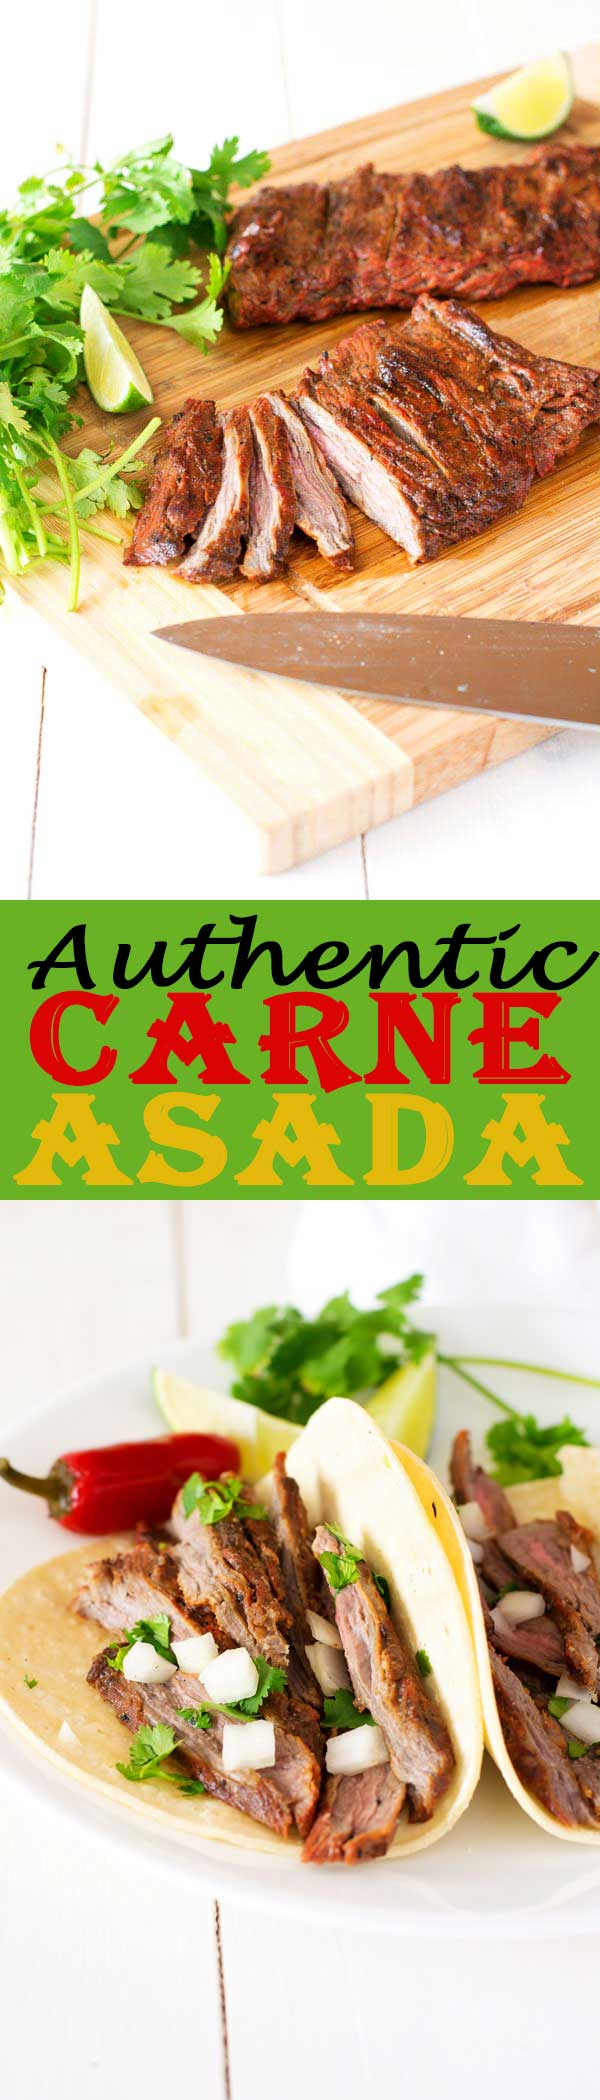 Treat yourself to Mexican at home with authentic carne asada! With a simple marinade that really lets the steak shine, this tender beef can be used in tacos, burrito bowls, salads and more!